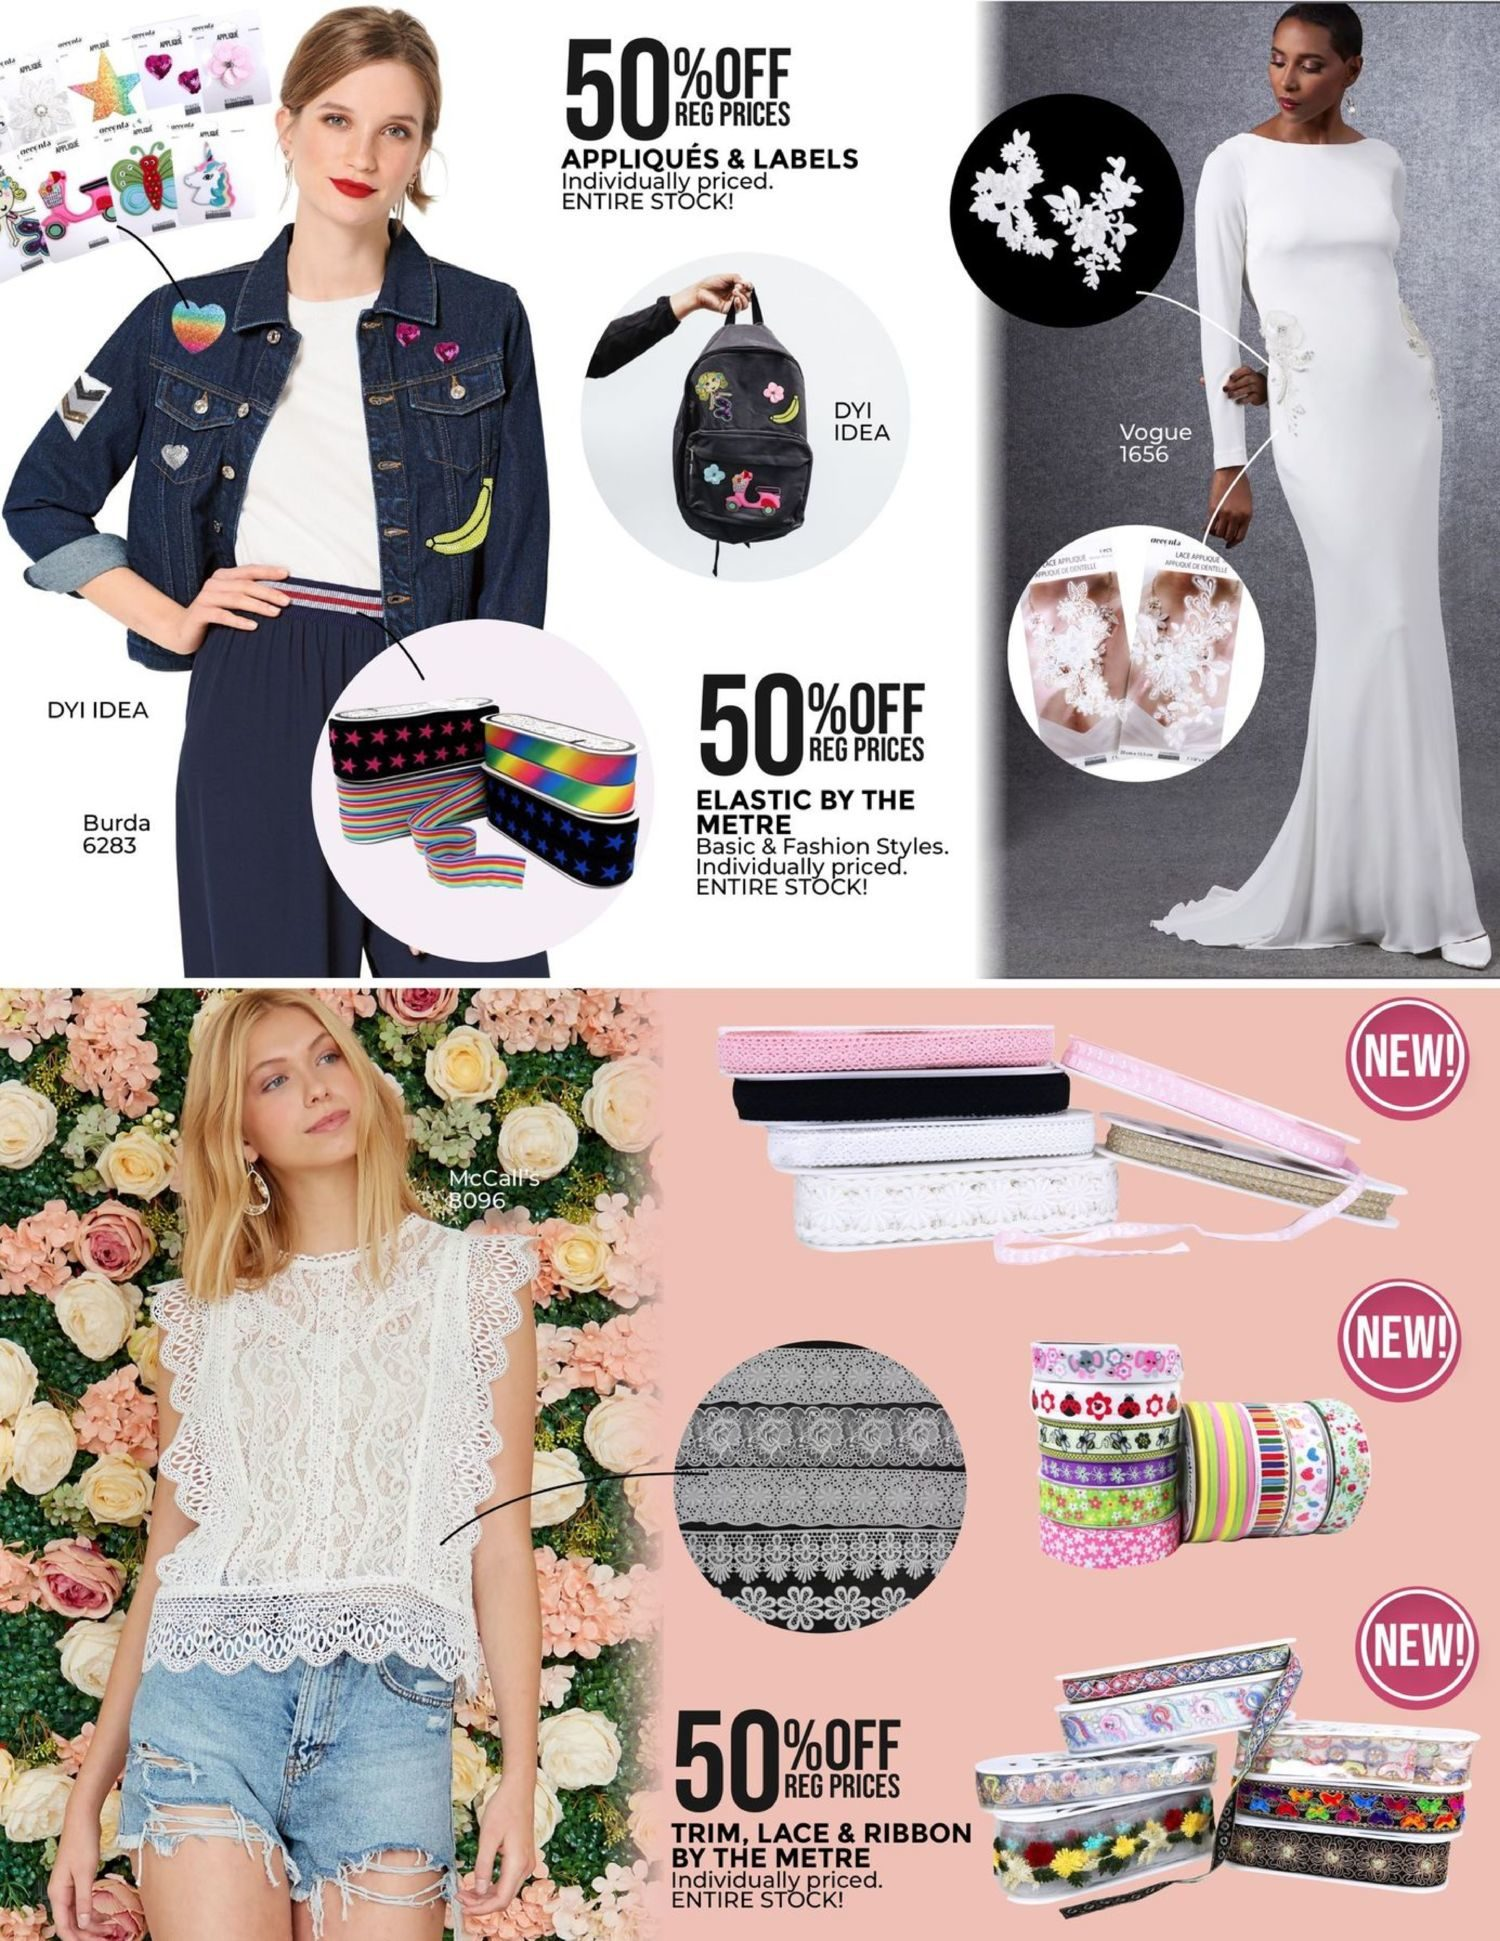 Fabricland - Monthly Offers - 53rd Birthday Sale - Page 16